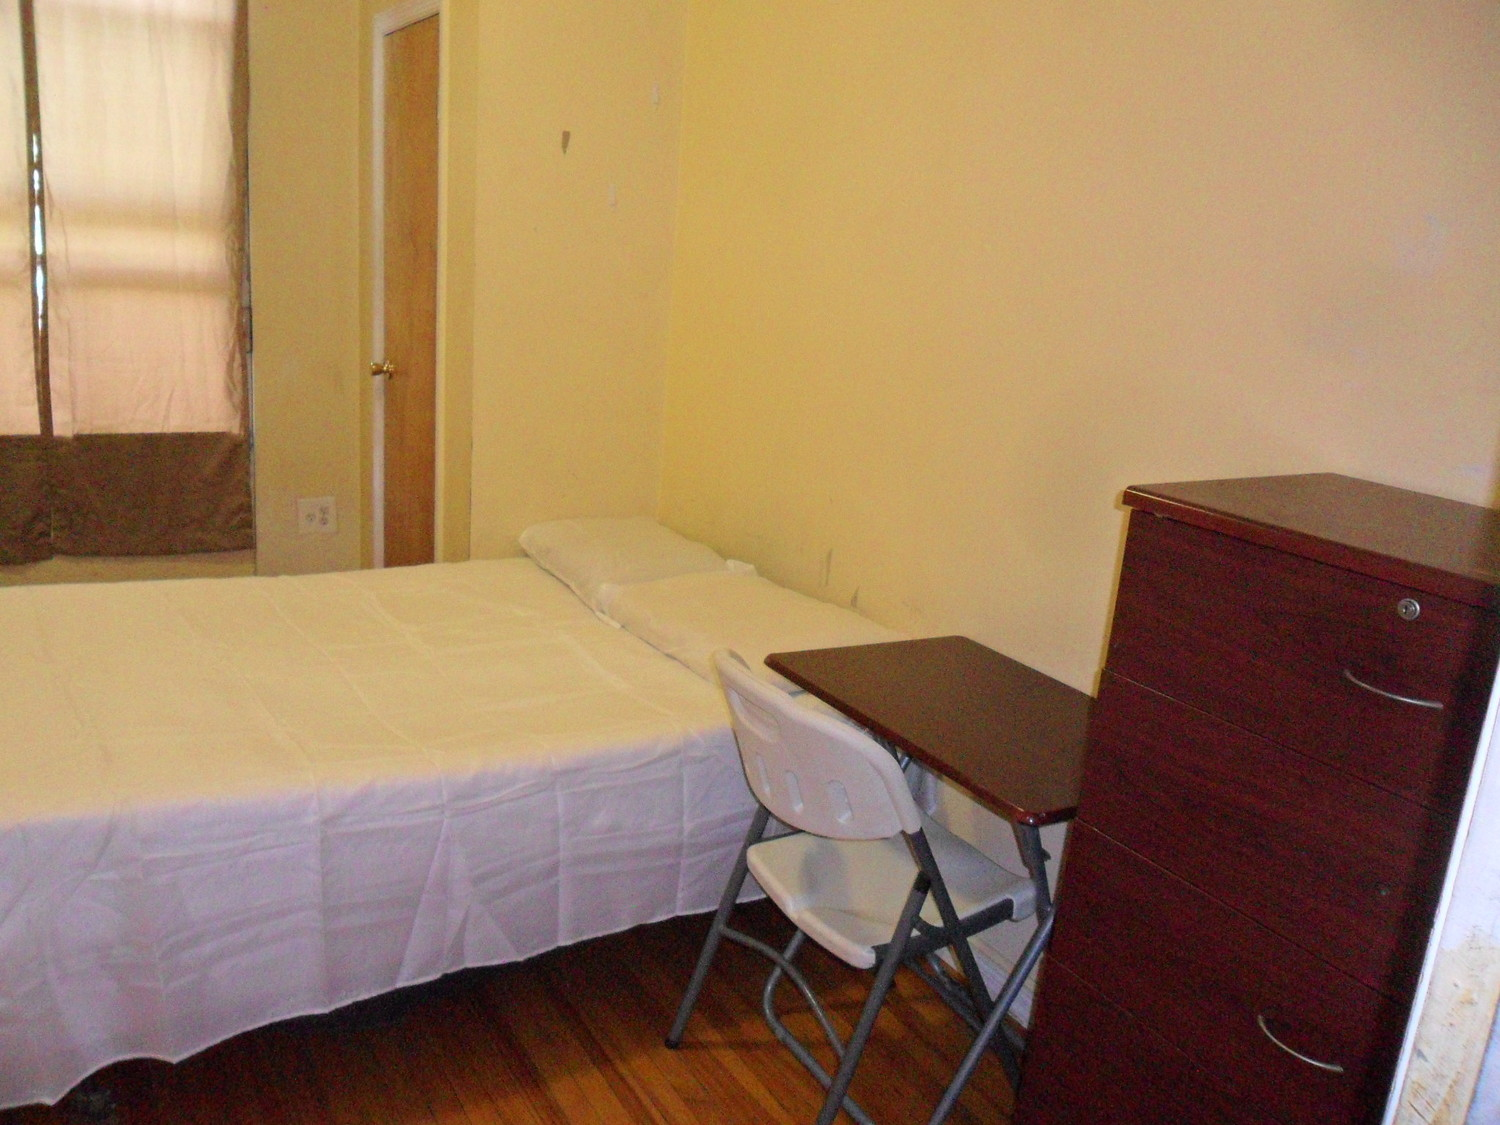 Room available for immediate rental. All utilities are included with WiFi